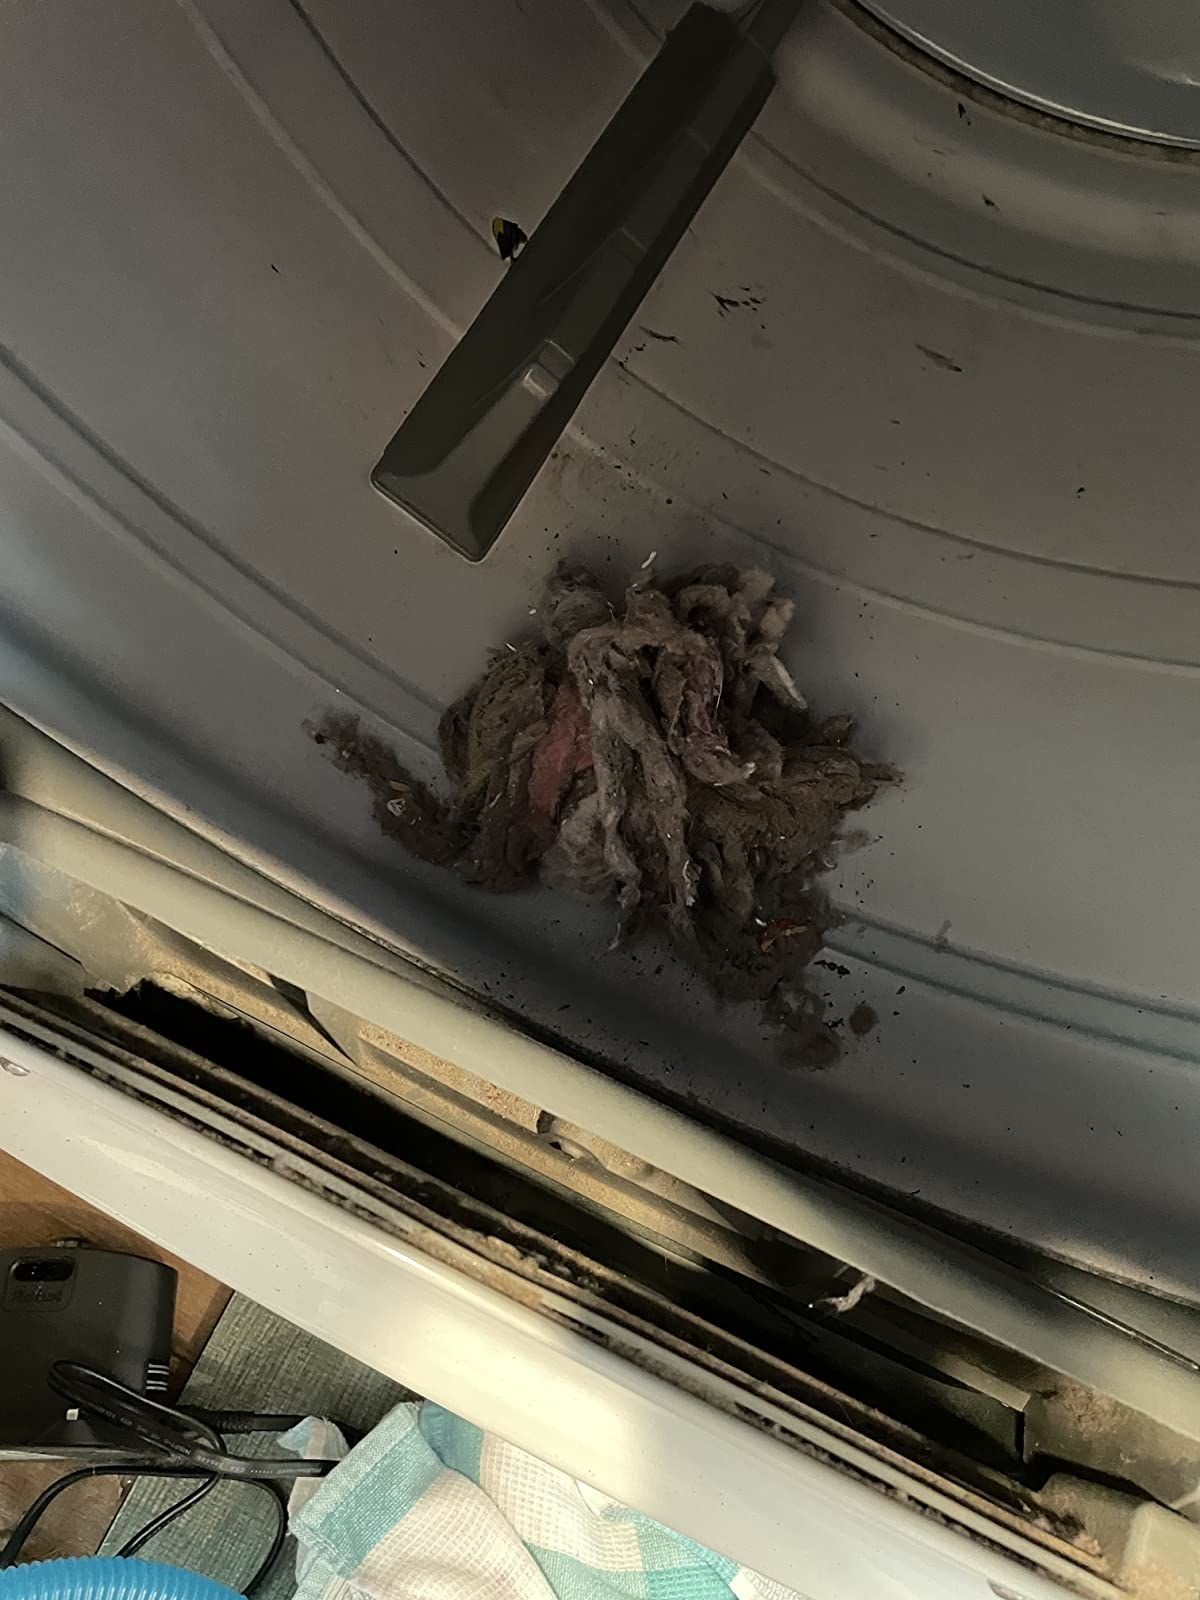 a reviewer photo of the removed lint from a dryer